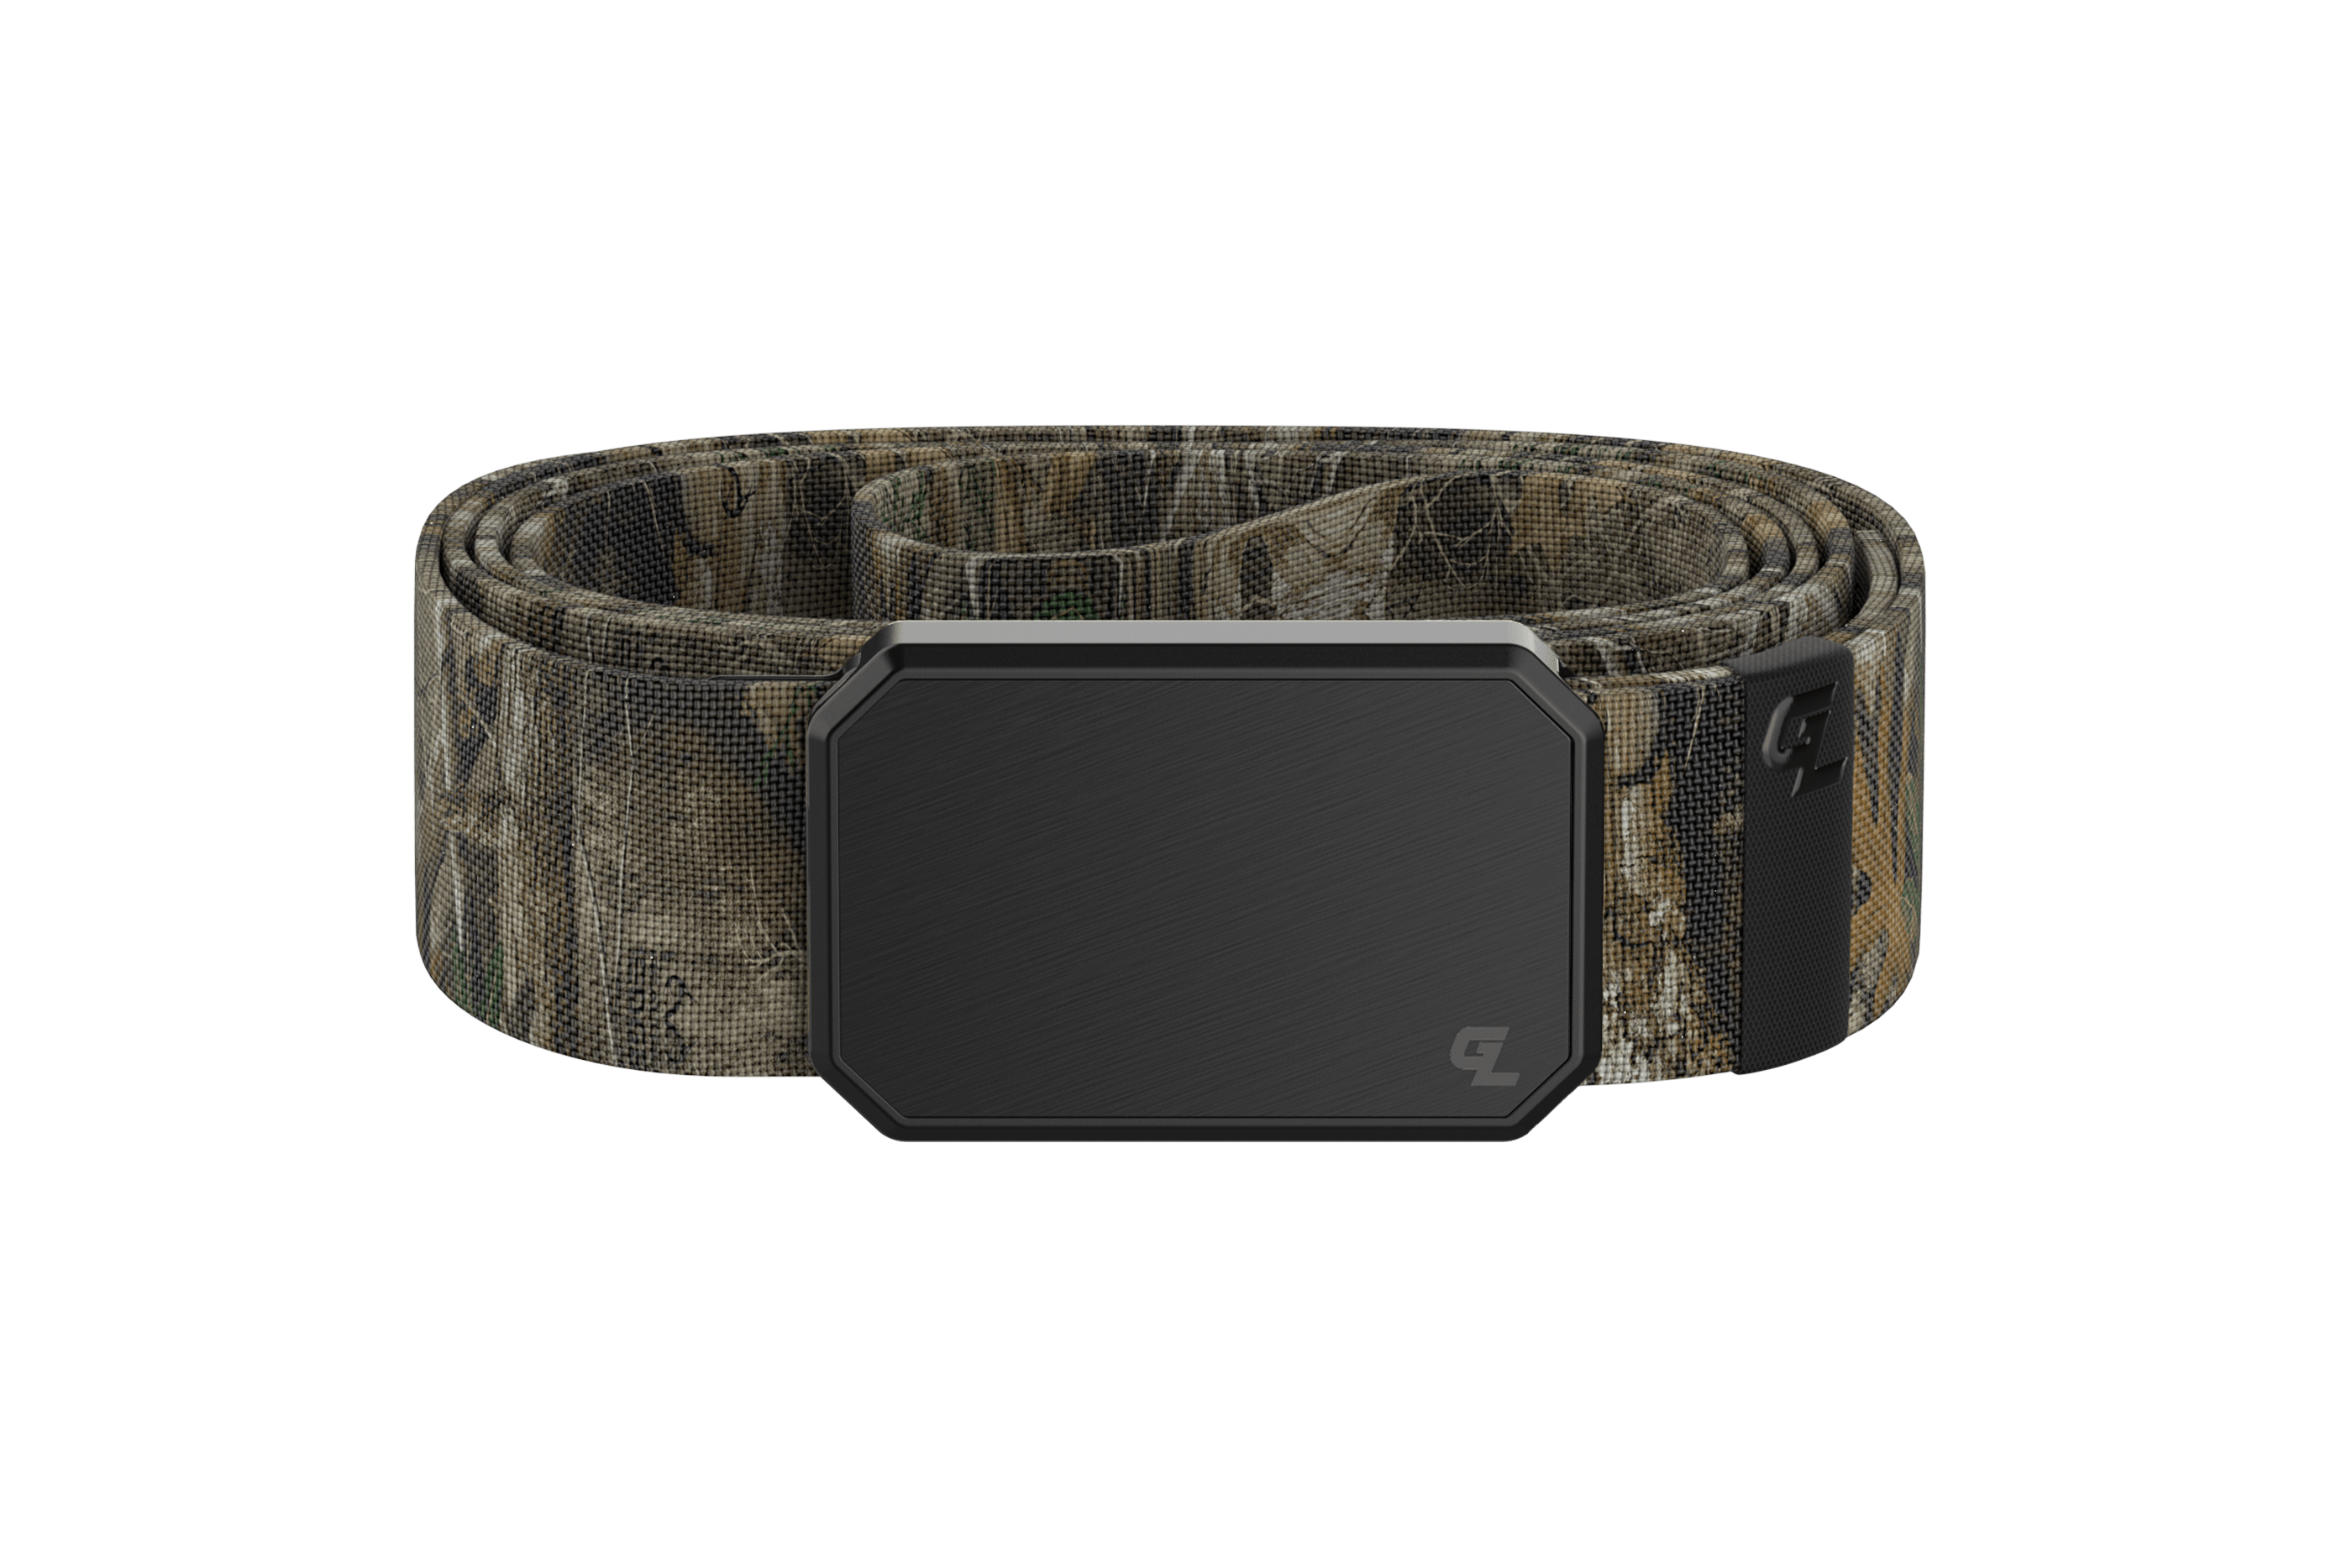 Groove Belt Black/Realtree Edge viewed from front